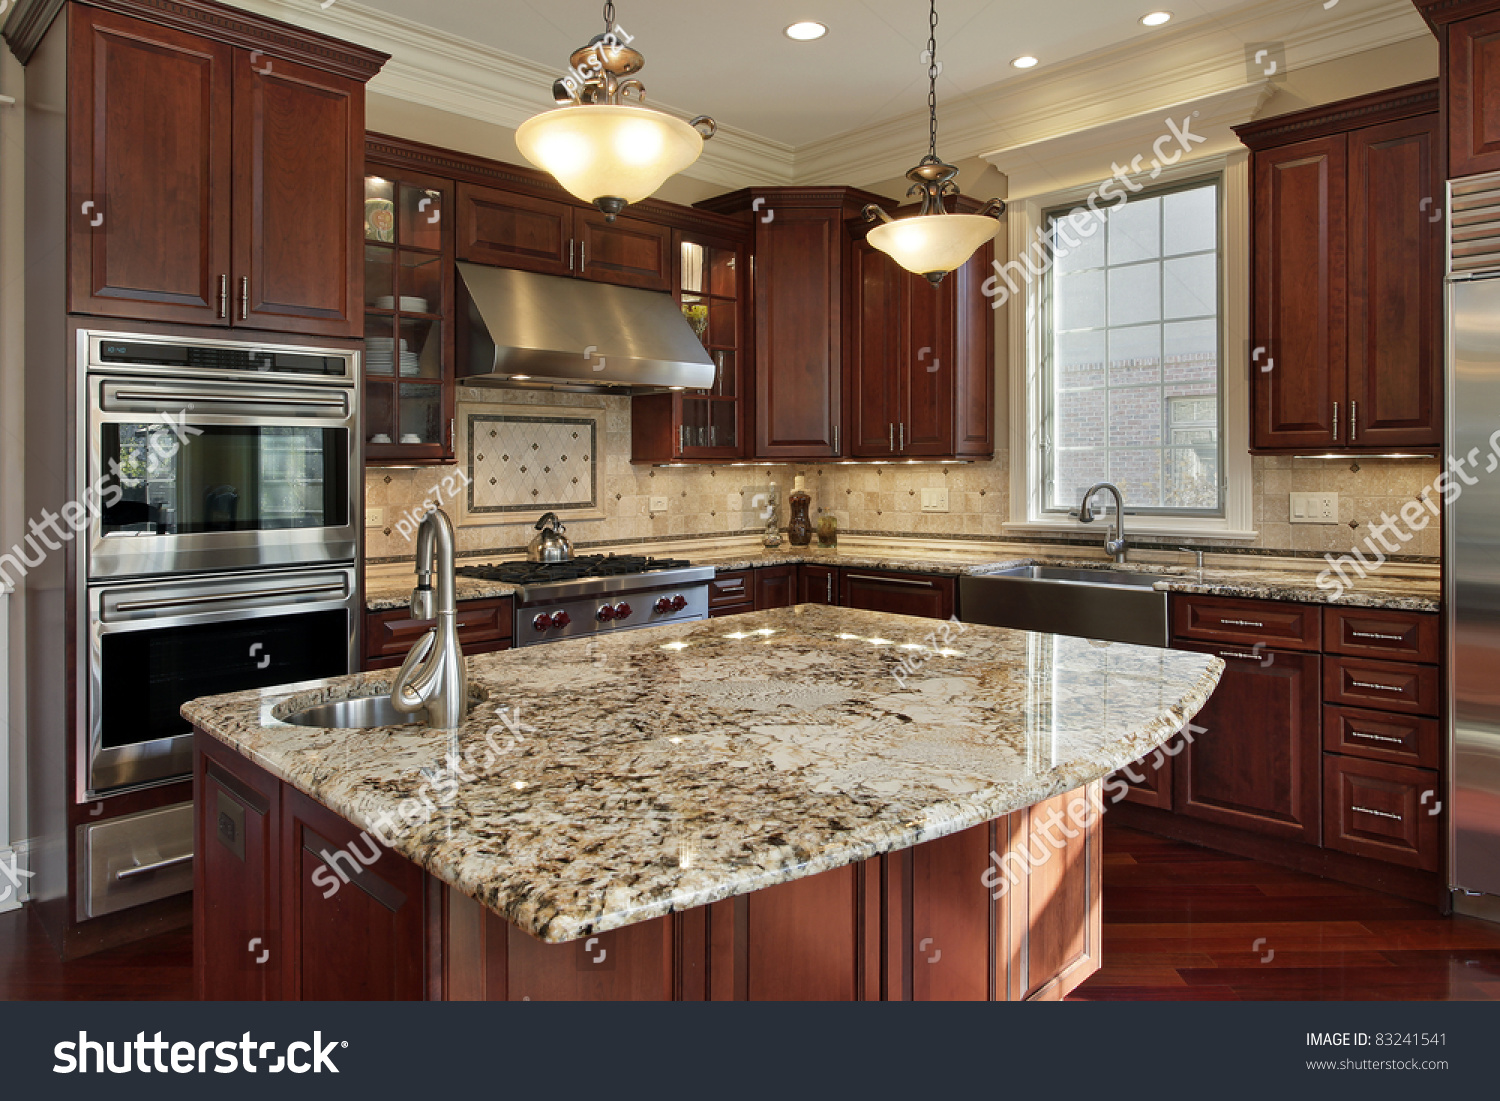 Granite Island Kitchen Kitchen Granite Island Cherry Wood Cabinetry Stock Photo 83241541